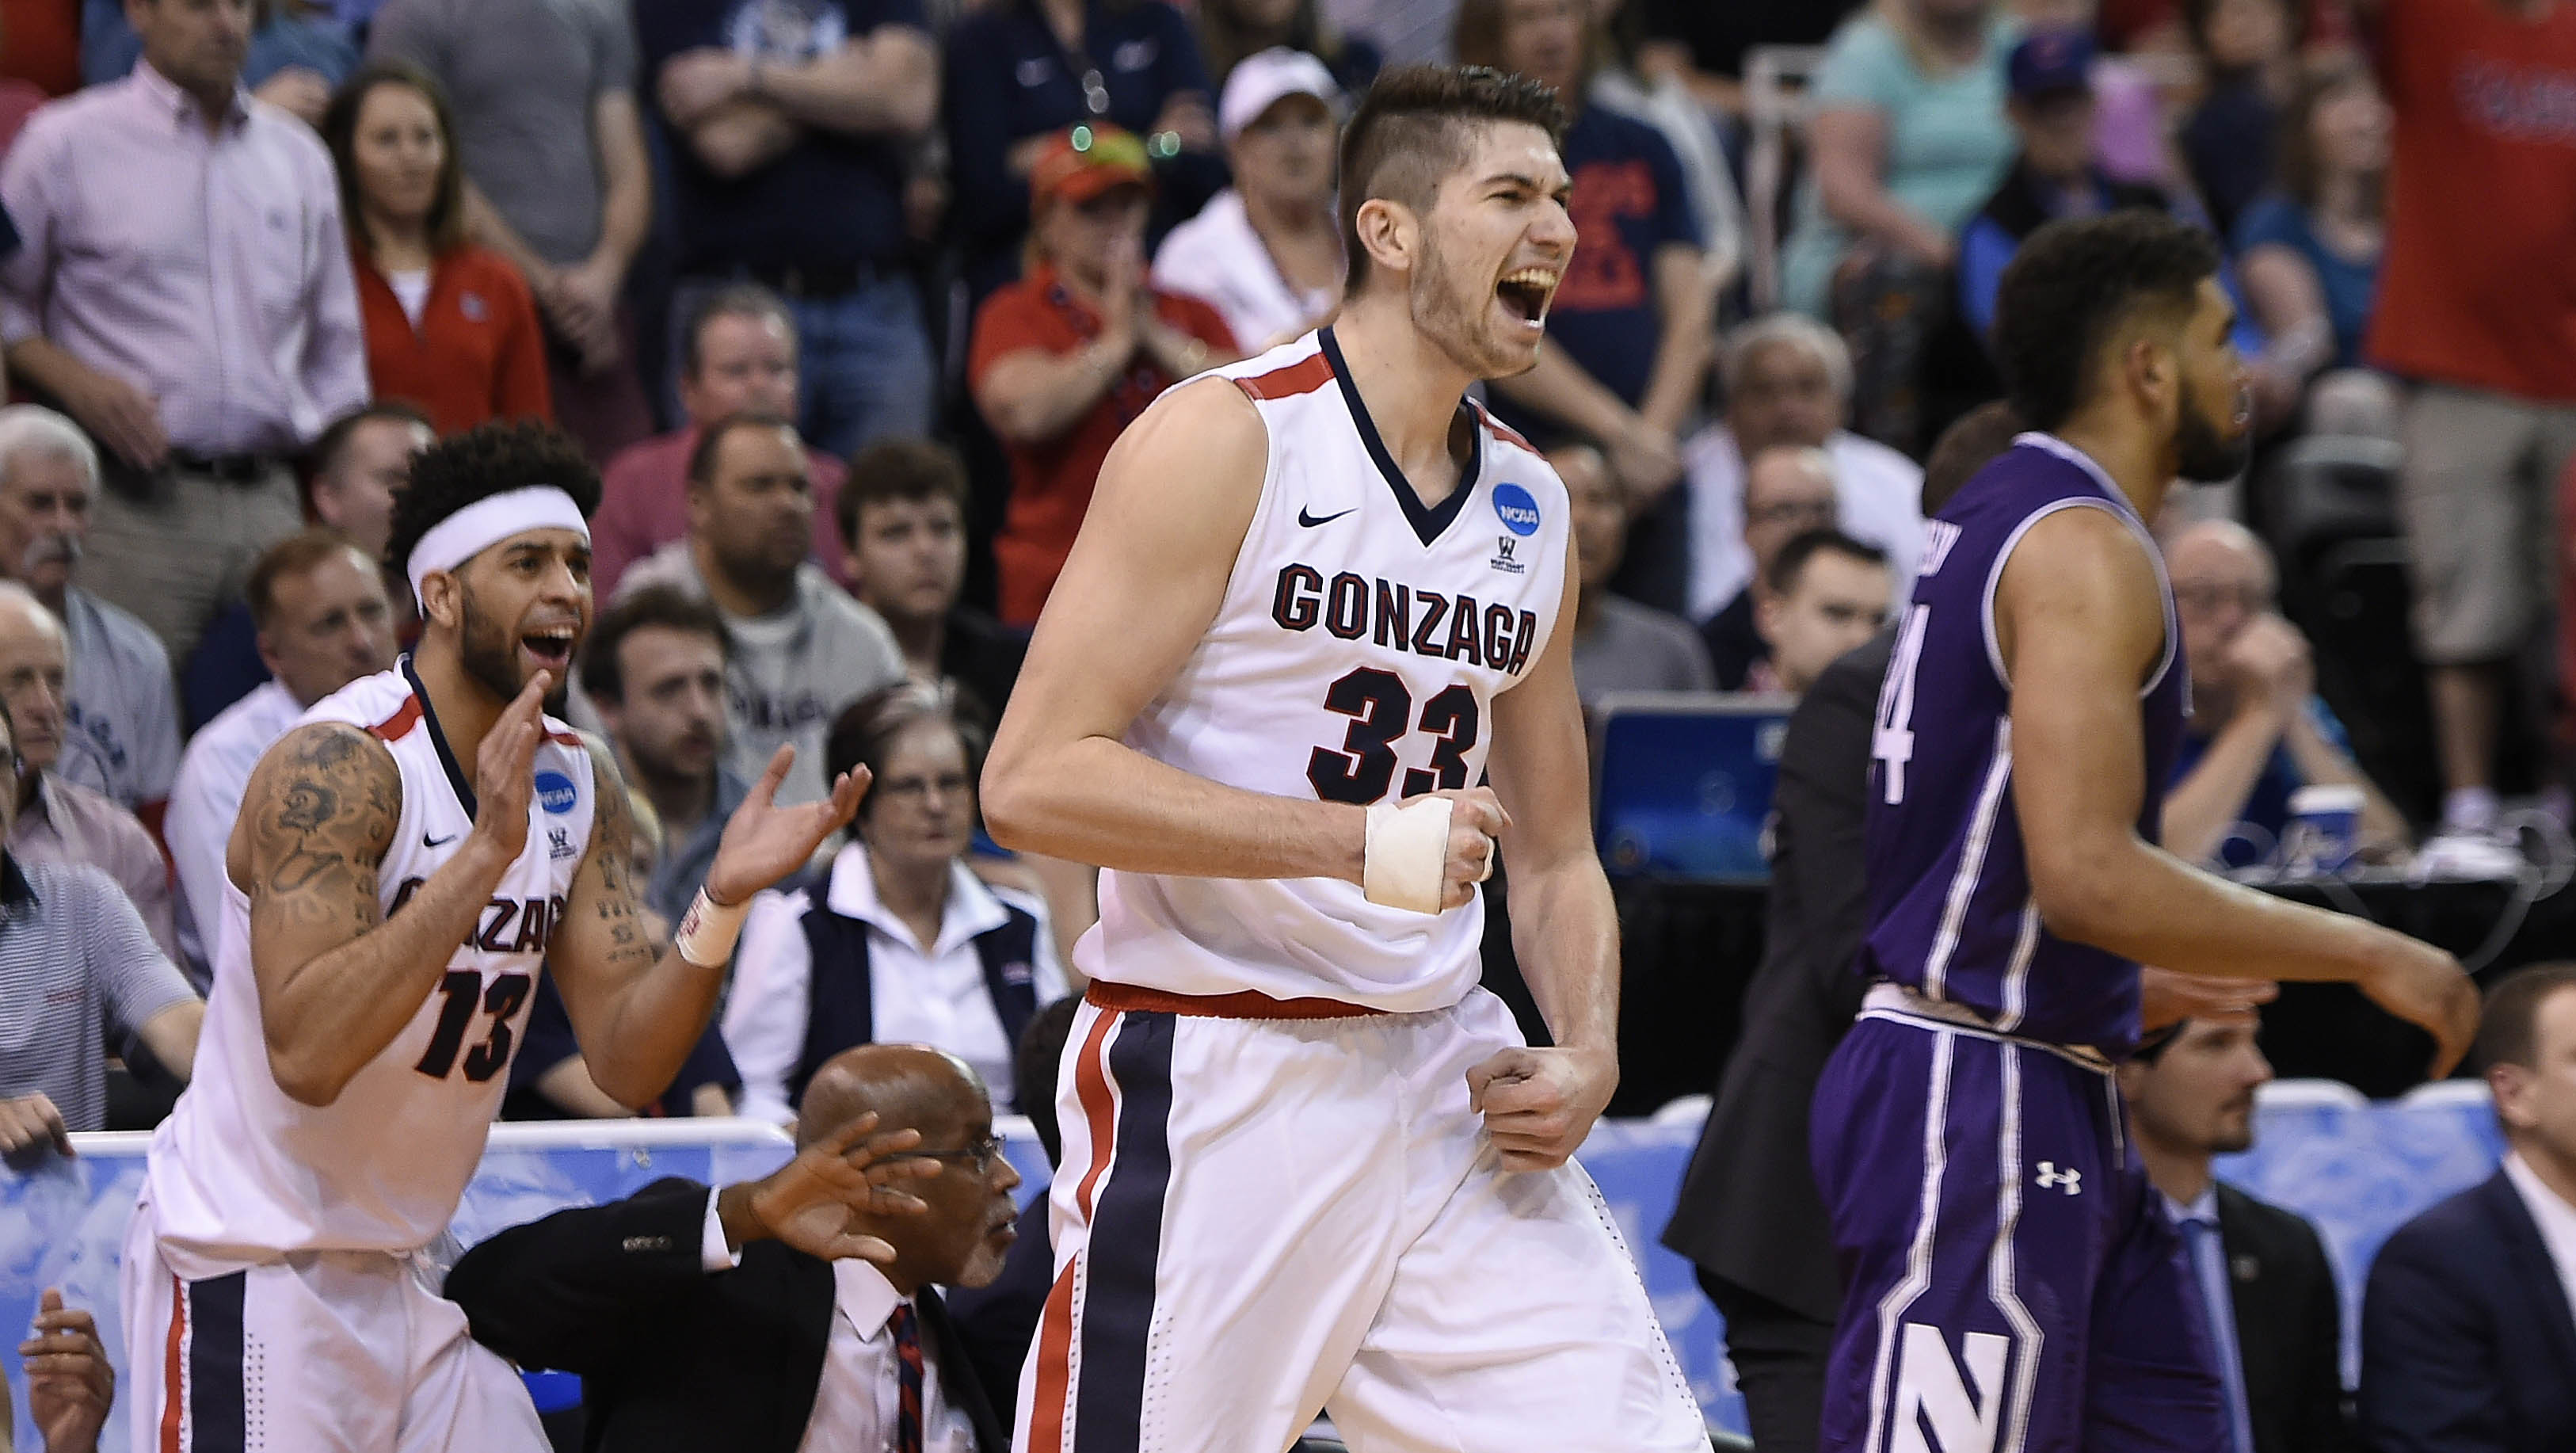 6ceb2a7fcf82 Are Gonzaga Bulldogs the Favorite to Snag Their First-Ever NCAA Tourney  Title